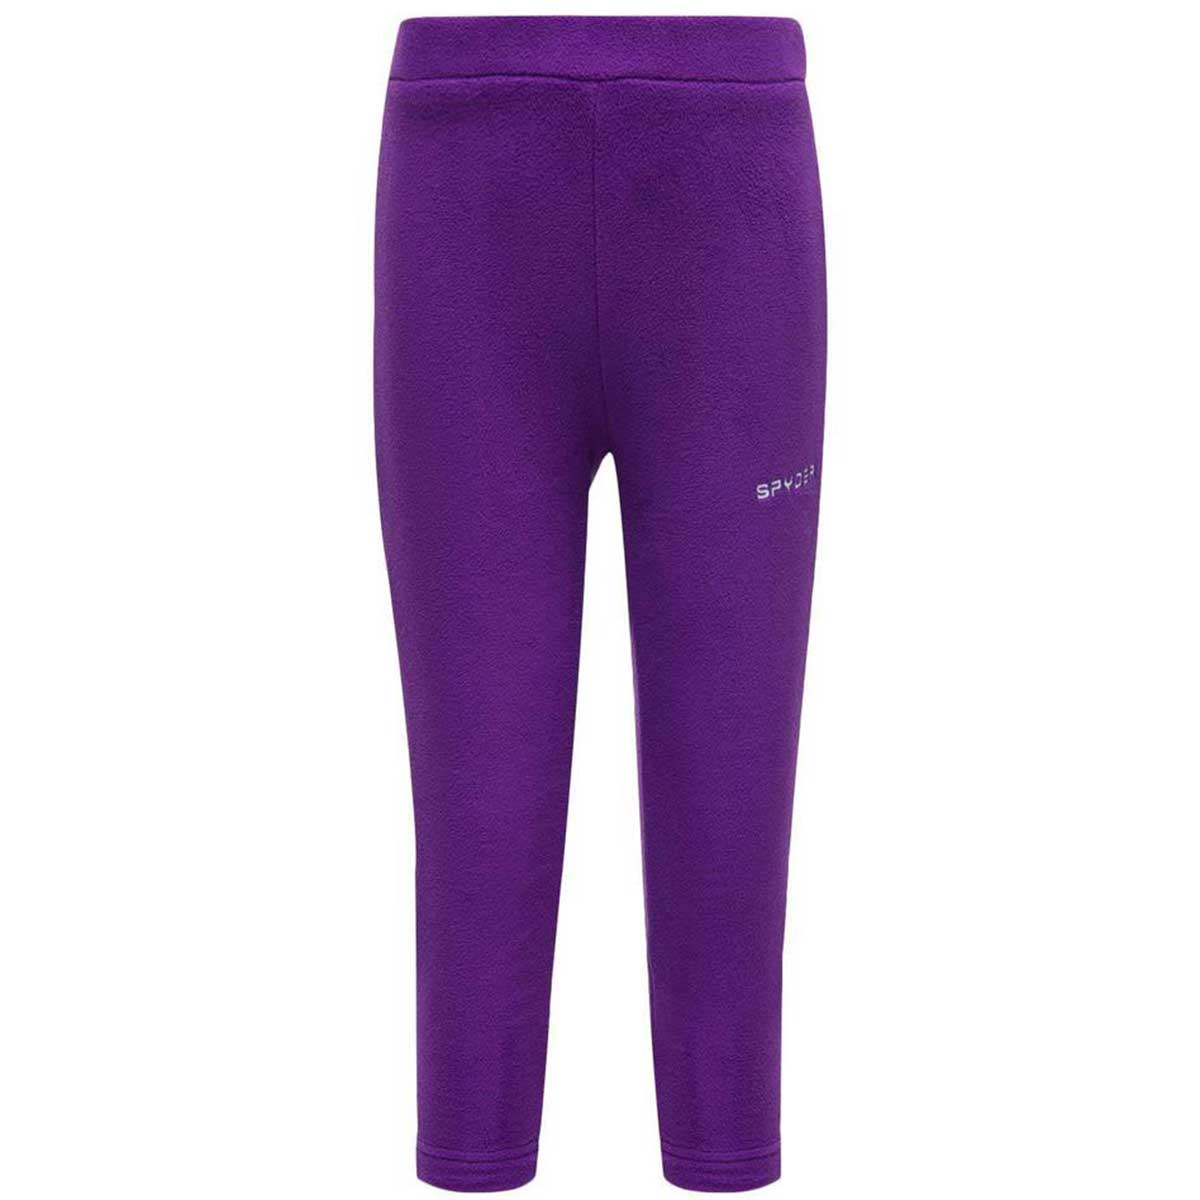 Spyder girls' Bitsy Speed Fleece Pant in Majesty front view